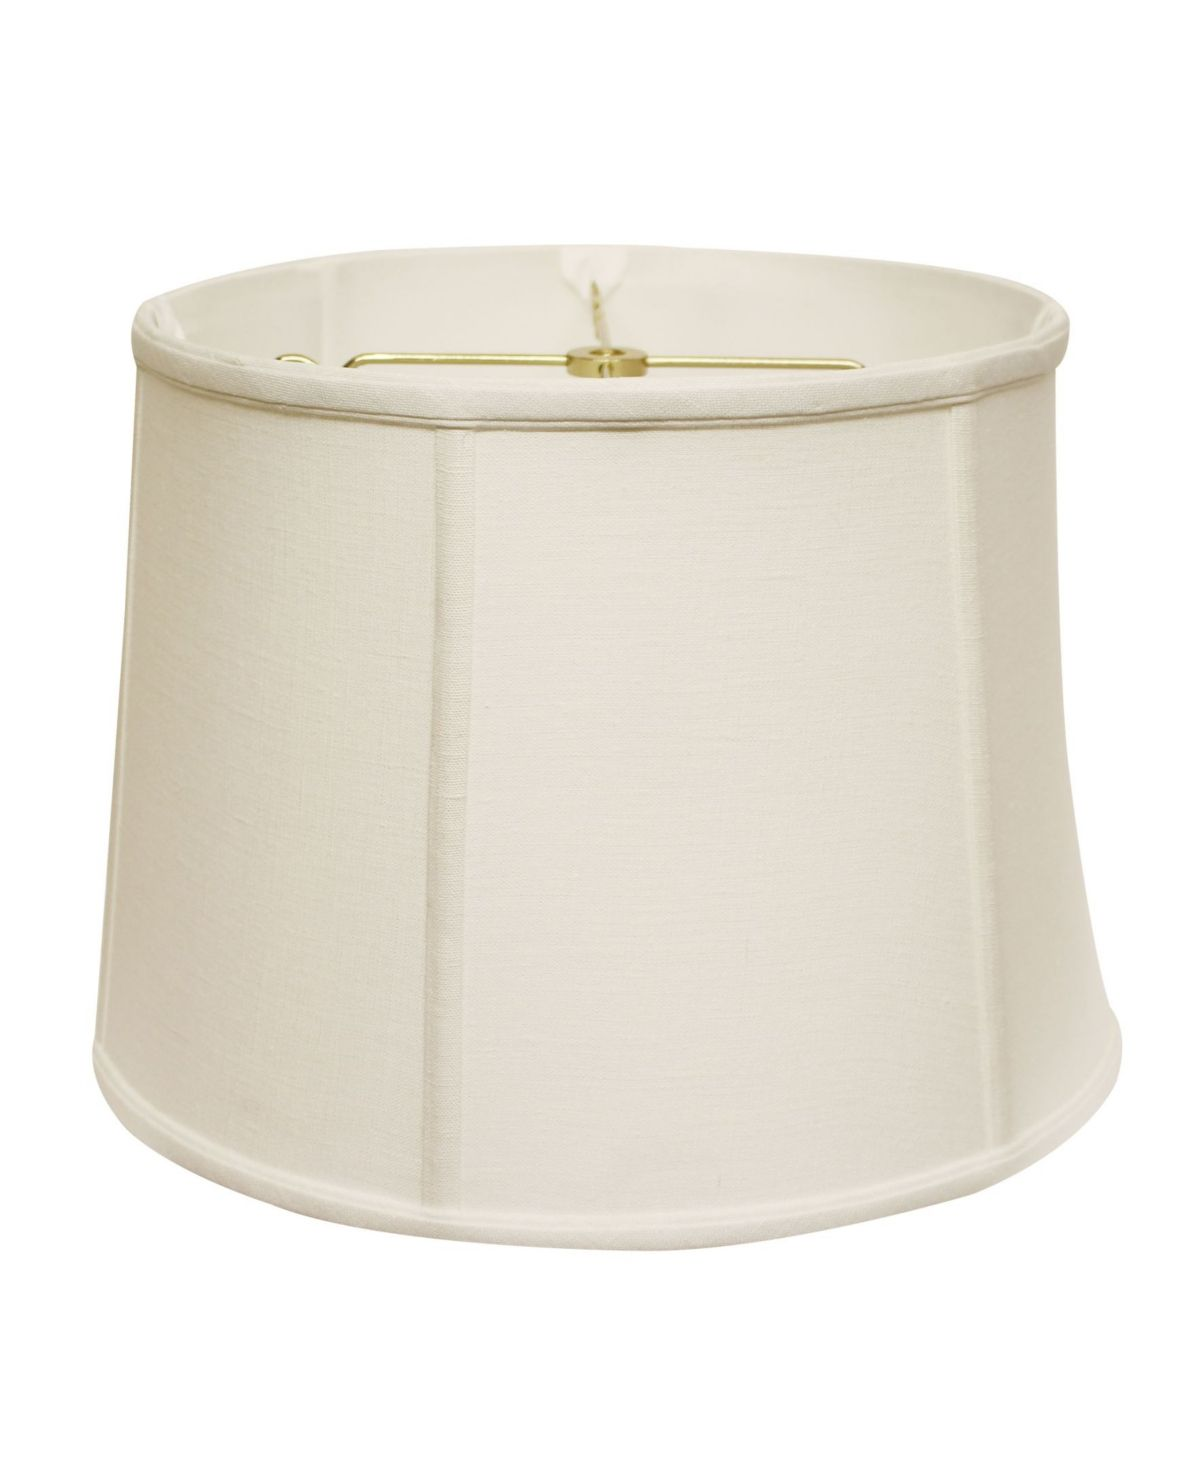 Ready to go retro Our Retro Drum Lamp Shade is a fantastic way to change the vibe of any space in your office or home. This shade comes in a variety of fabrics such as linen, silk, and burlap, available in neutral tones that make a subtle retro complement to your existing home decor.